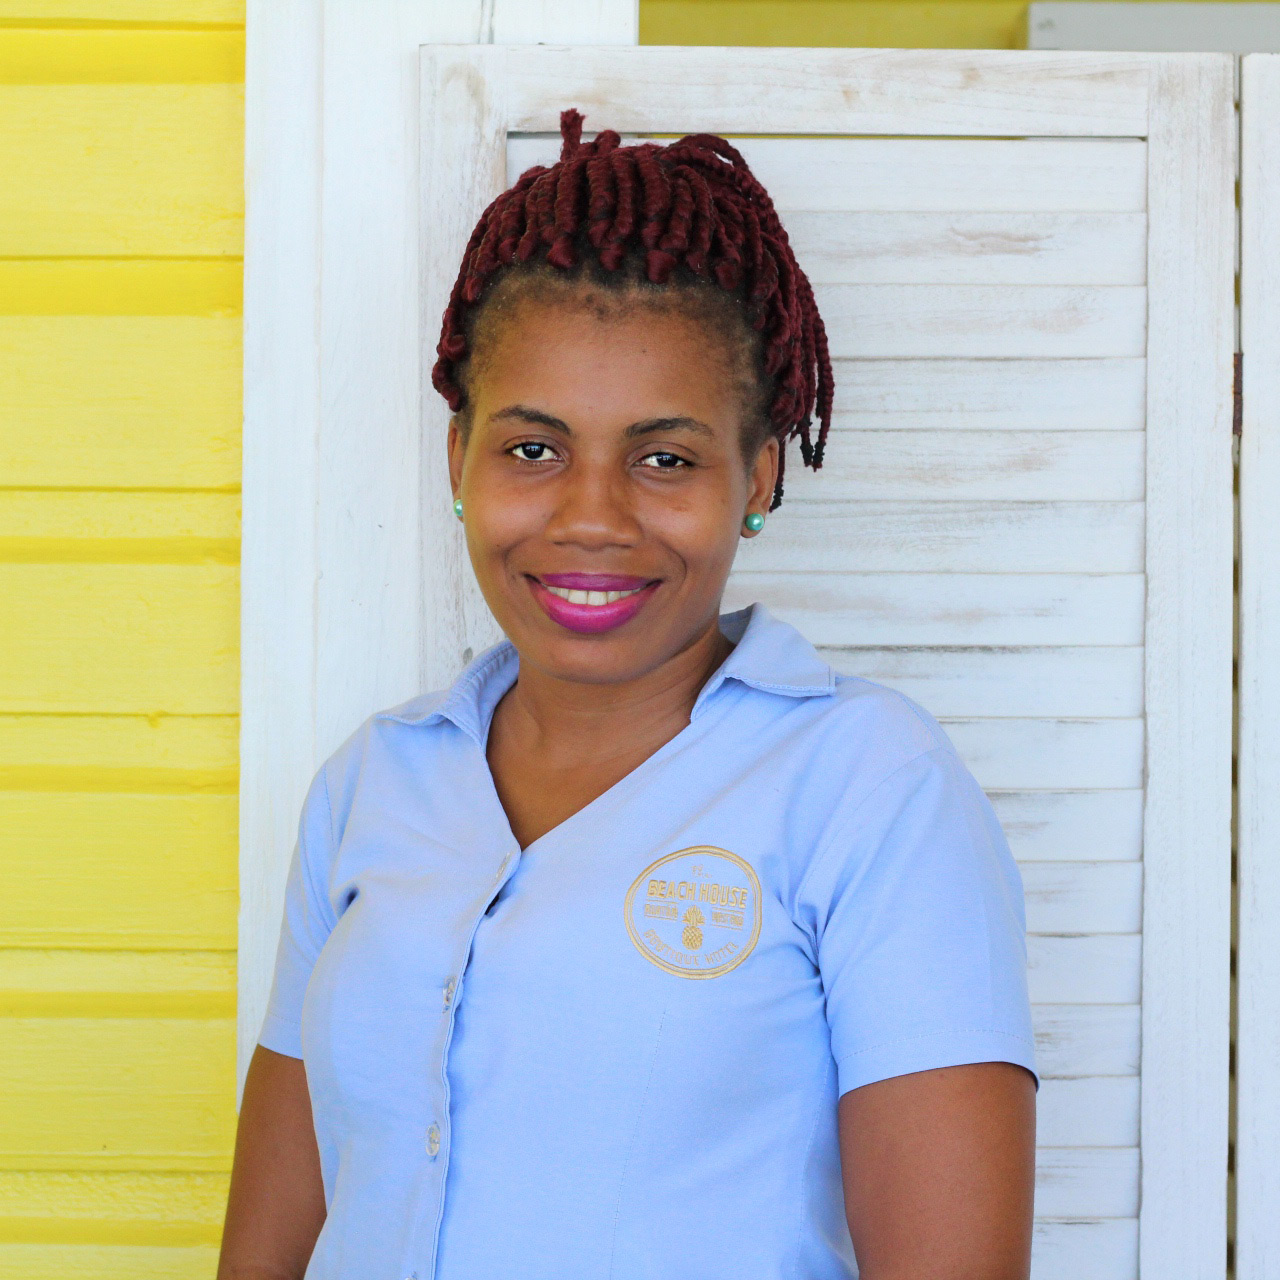 Sherly Housekeeping Manager